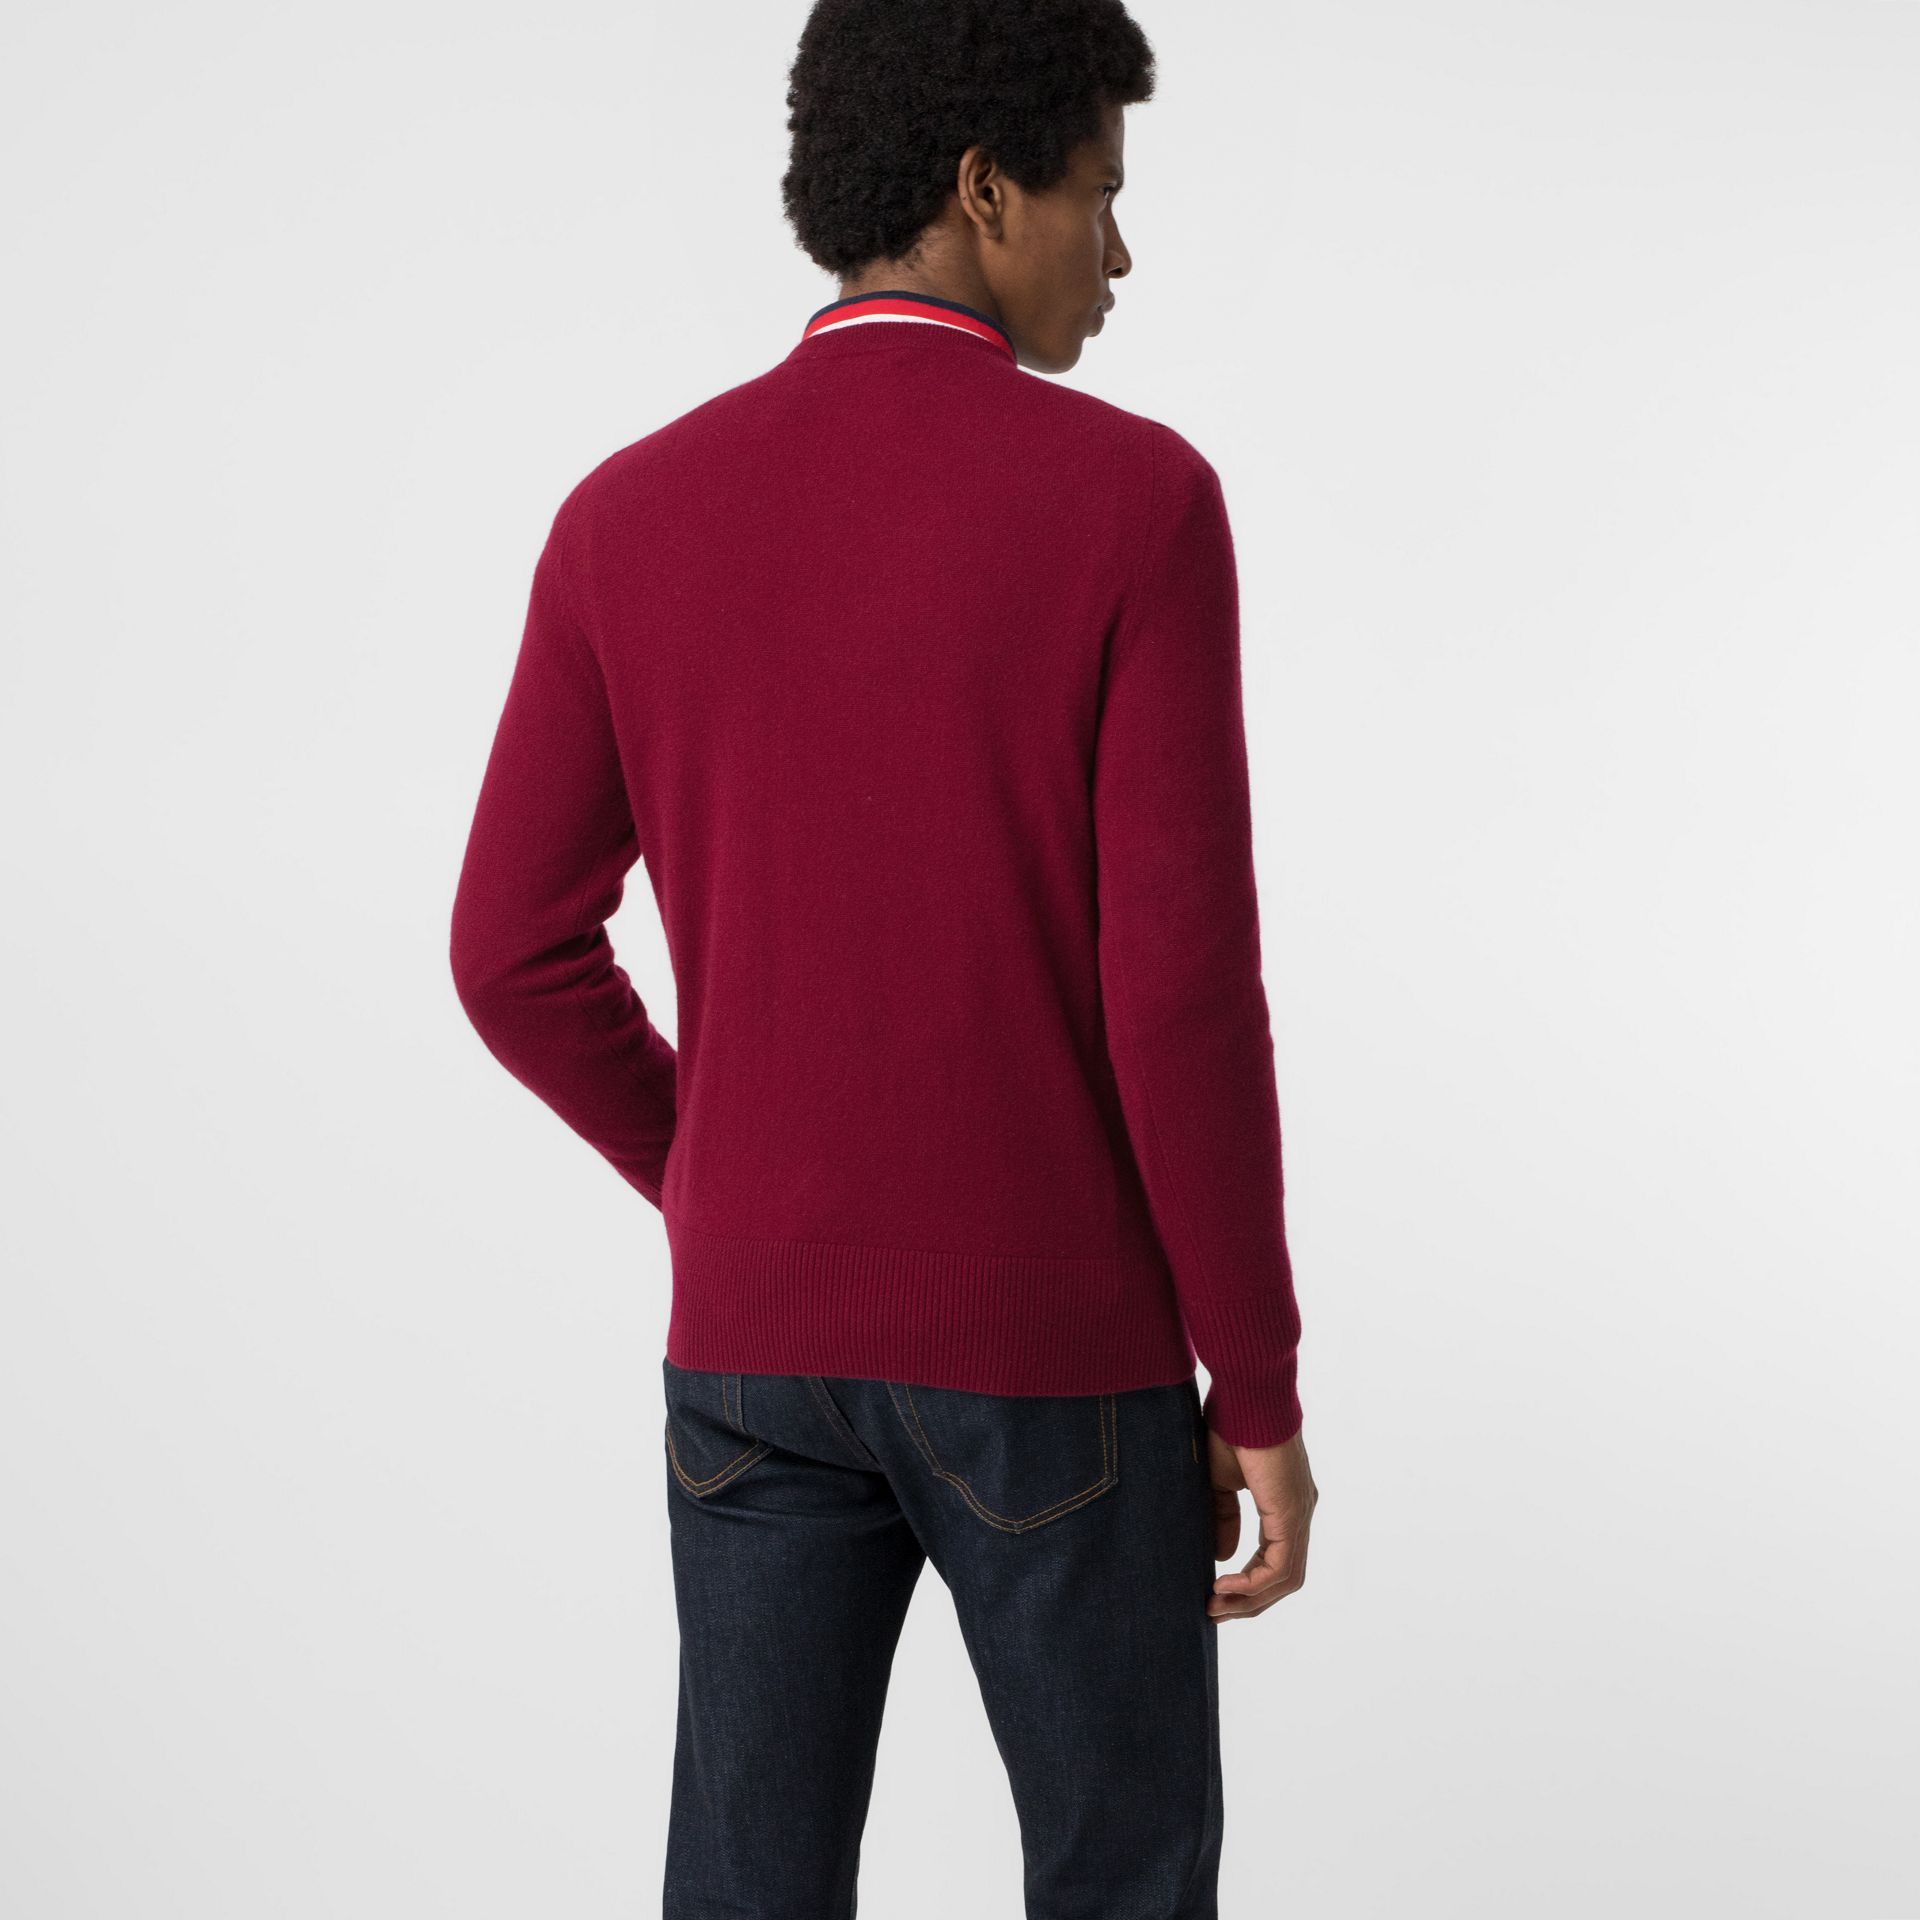 Embroidered Logo Cashmere Sweater in Claret - Men | Burberry - gallery image 2